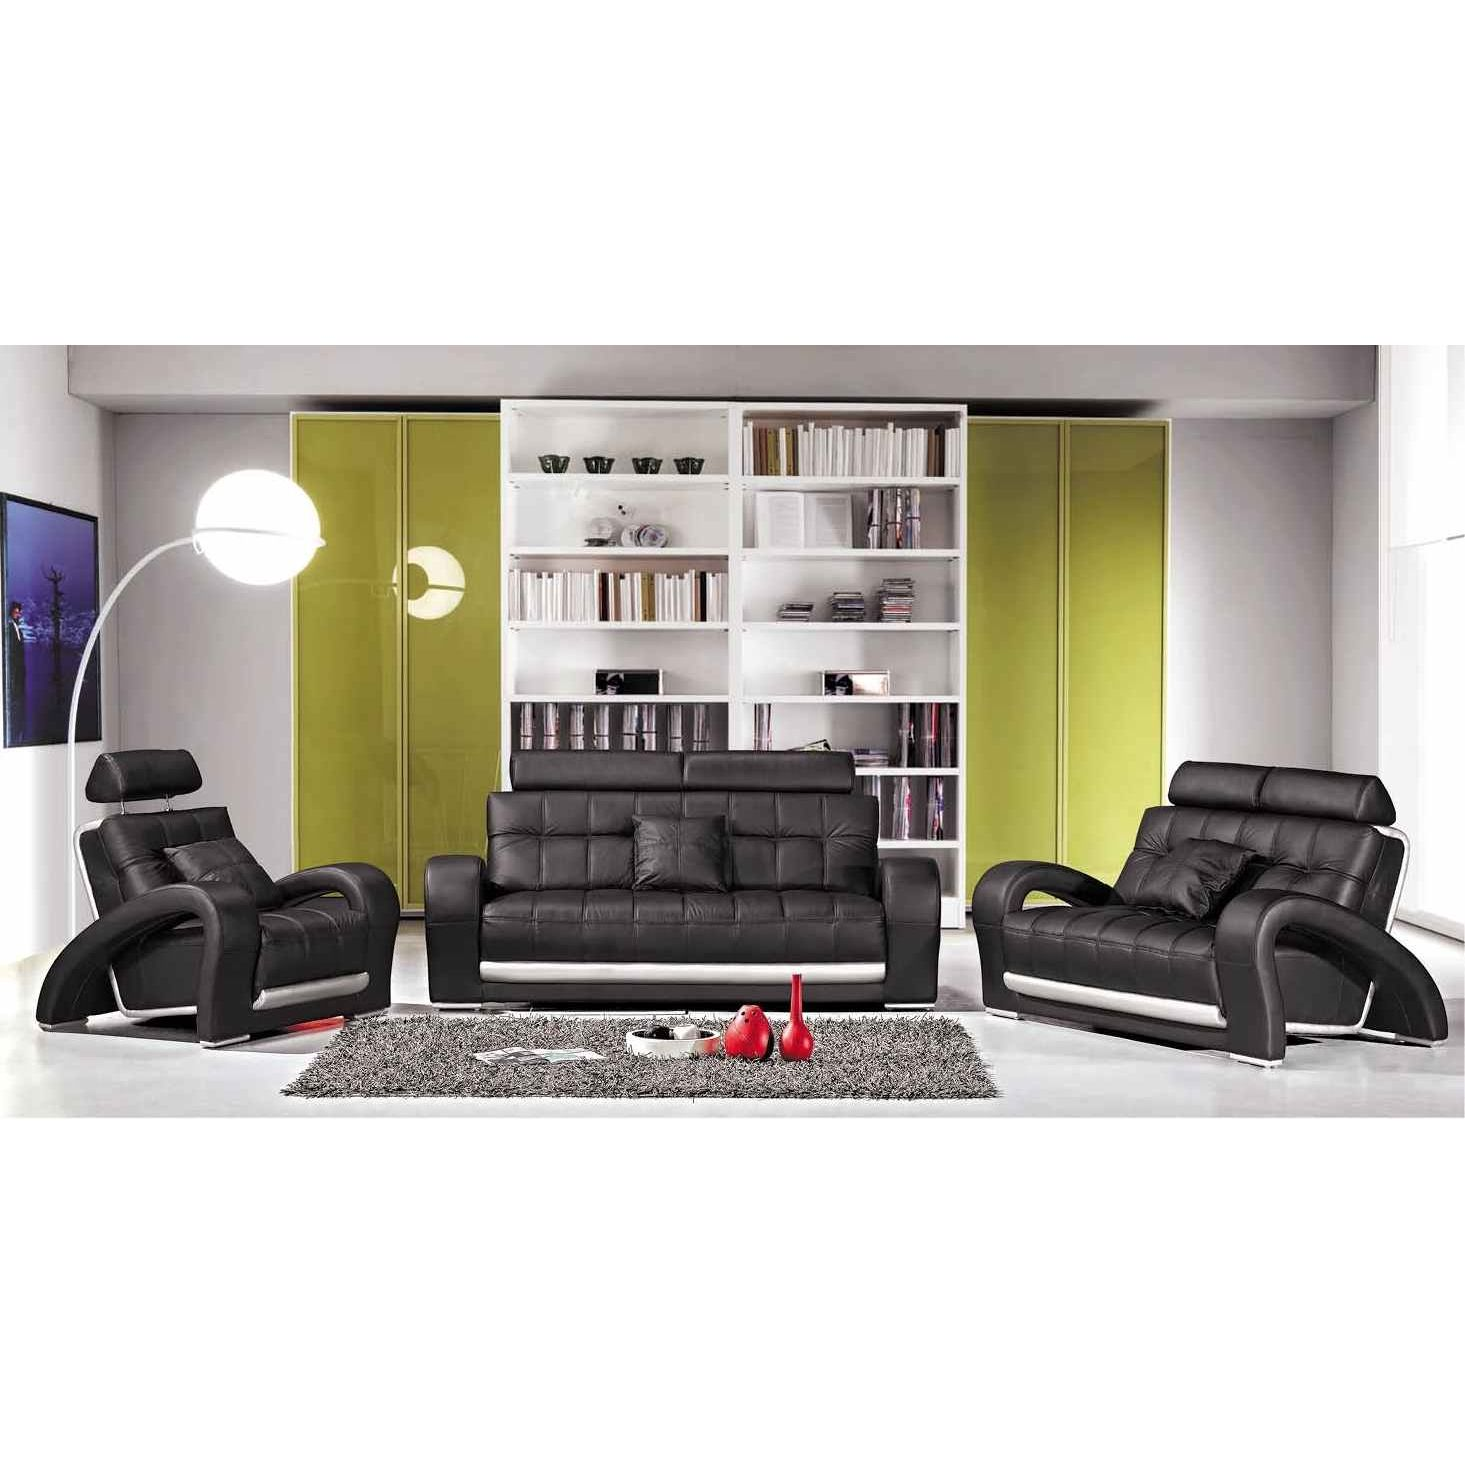 Deco in paris ensemble salon cuir noir 3 2 1 places - Fauteuil original salon ...